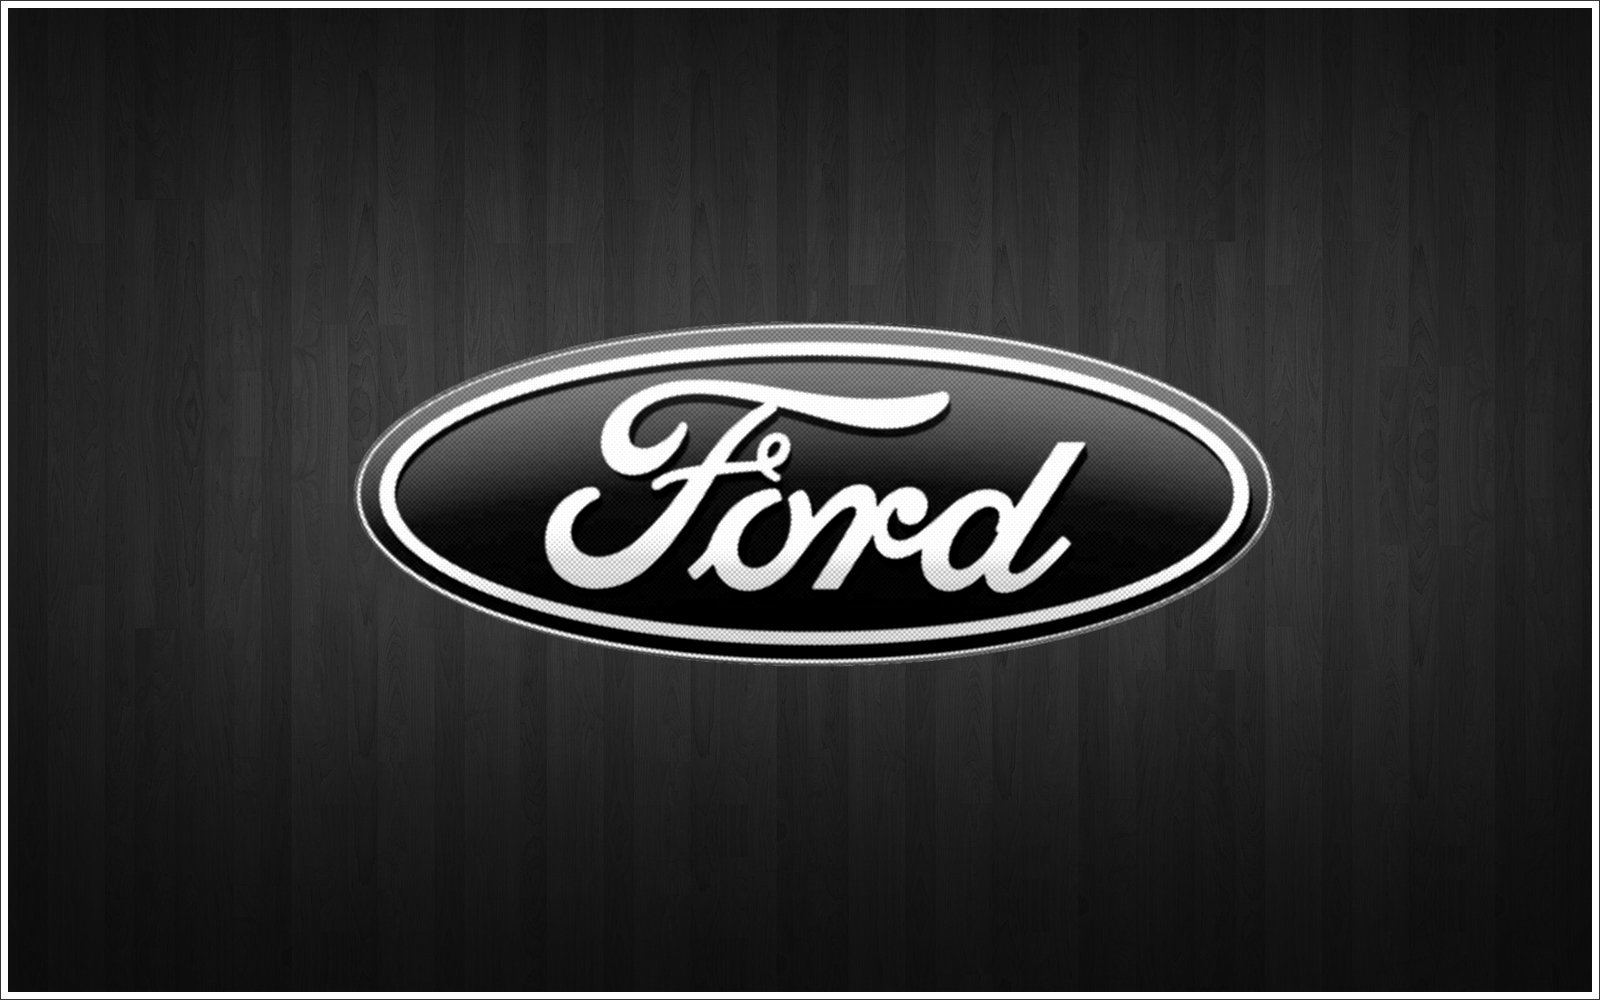 Ford Logo Meaning And History Latest Models World Cars Brands